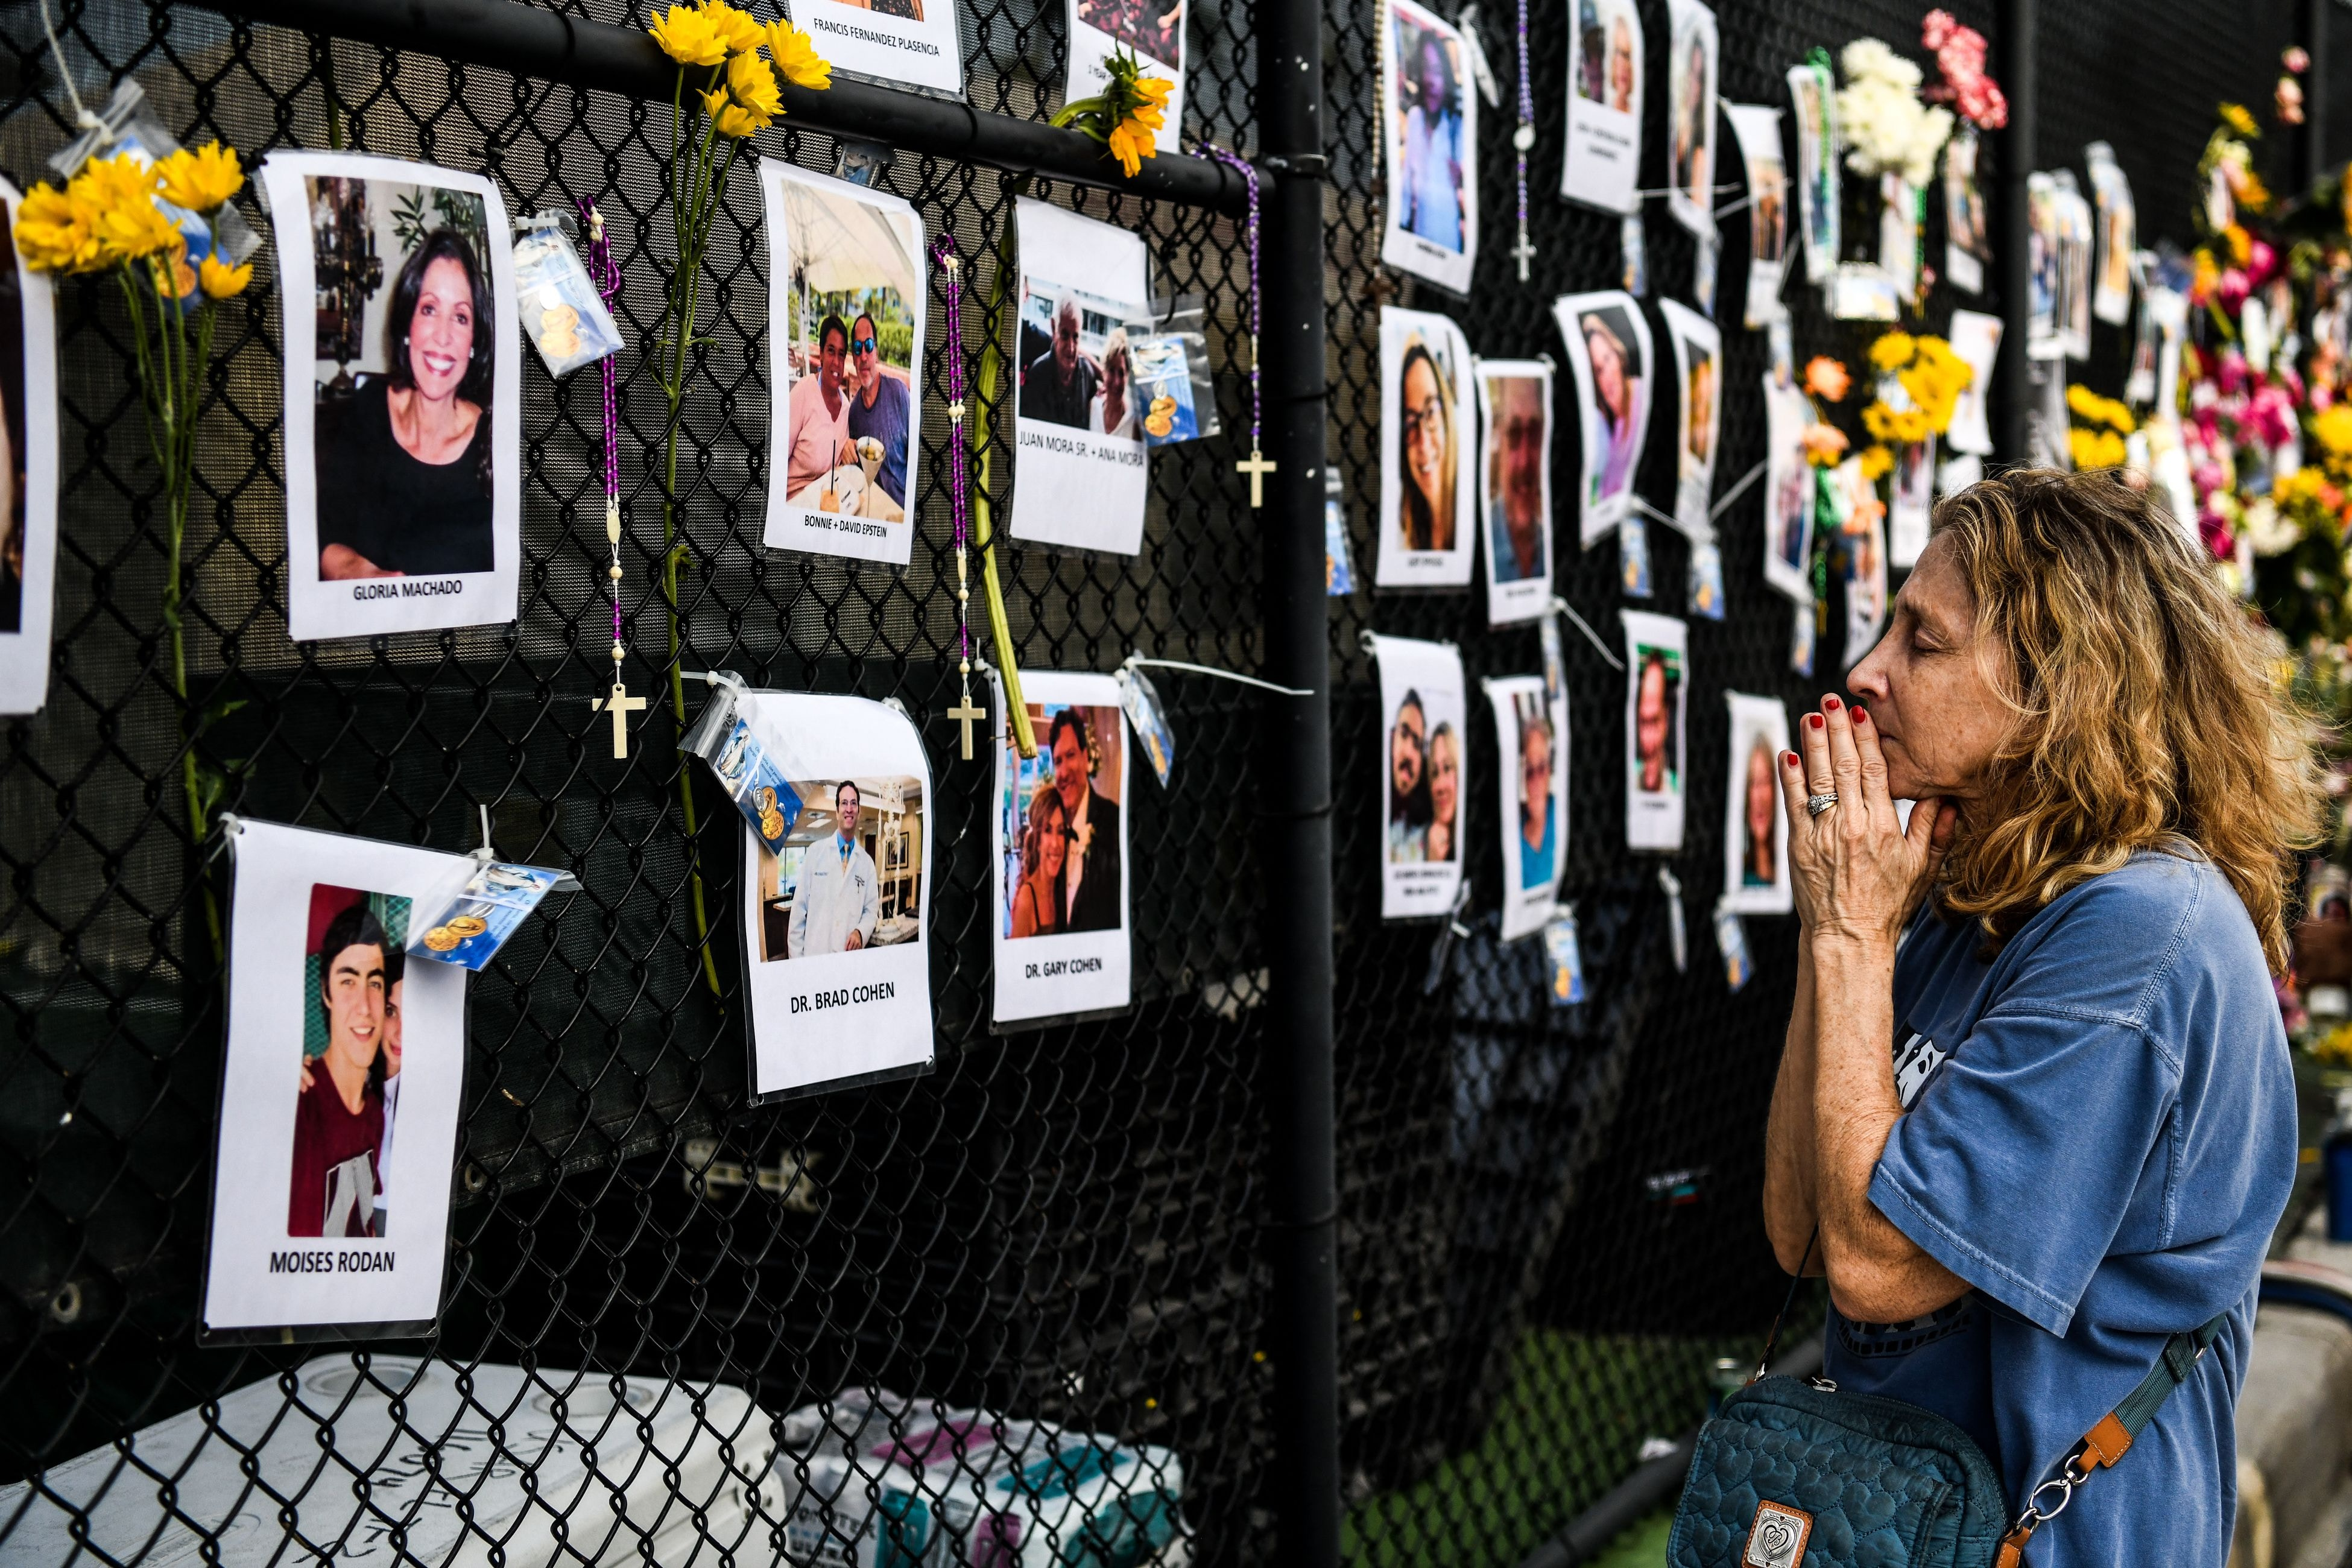 TOPSHOT - A woman prays in front of photos at the makeshift memorial for the victims of the building collapse, near the site of the accident in Surfside, Florida, north of Miami Beach on June 27, 2021. - The death toll after the collapse of a Florida apartment tower has risen to nine, officials said Sunday, with more than 150 people still missing and their weary families waiting more than three days afterwards for information as to their fate. The outlook grew more and more grim by the hour, however, as the slow rescue operation, involving workers sorting nonstop through the rubble in torrid heat and high humidity, carried on. (Photo by CHANDAN KHANNA / AFP) (Photo by CHANDAN KHANNA/AFP via Getty Images)